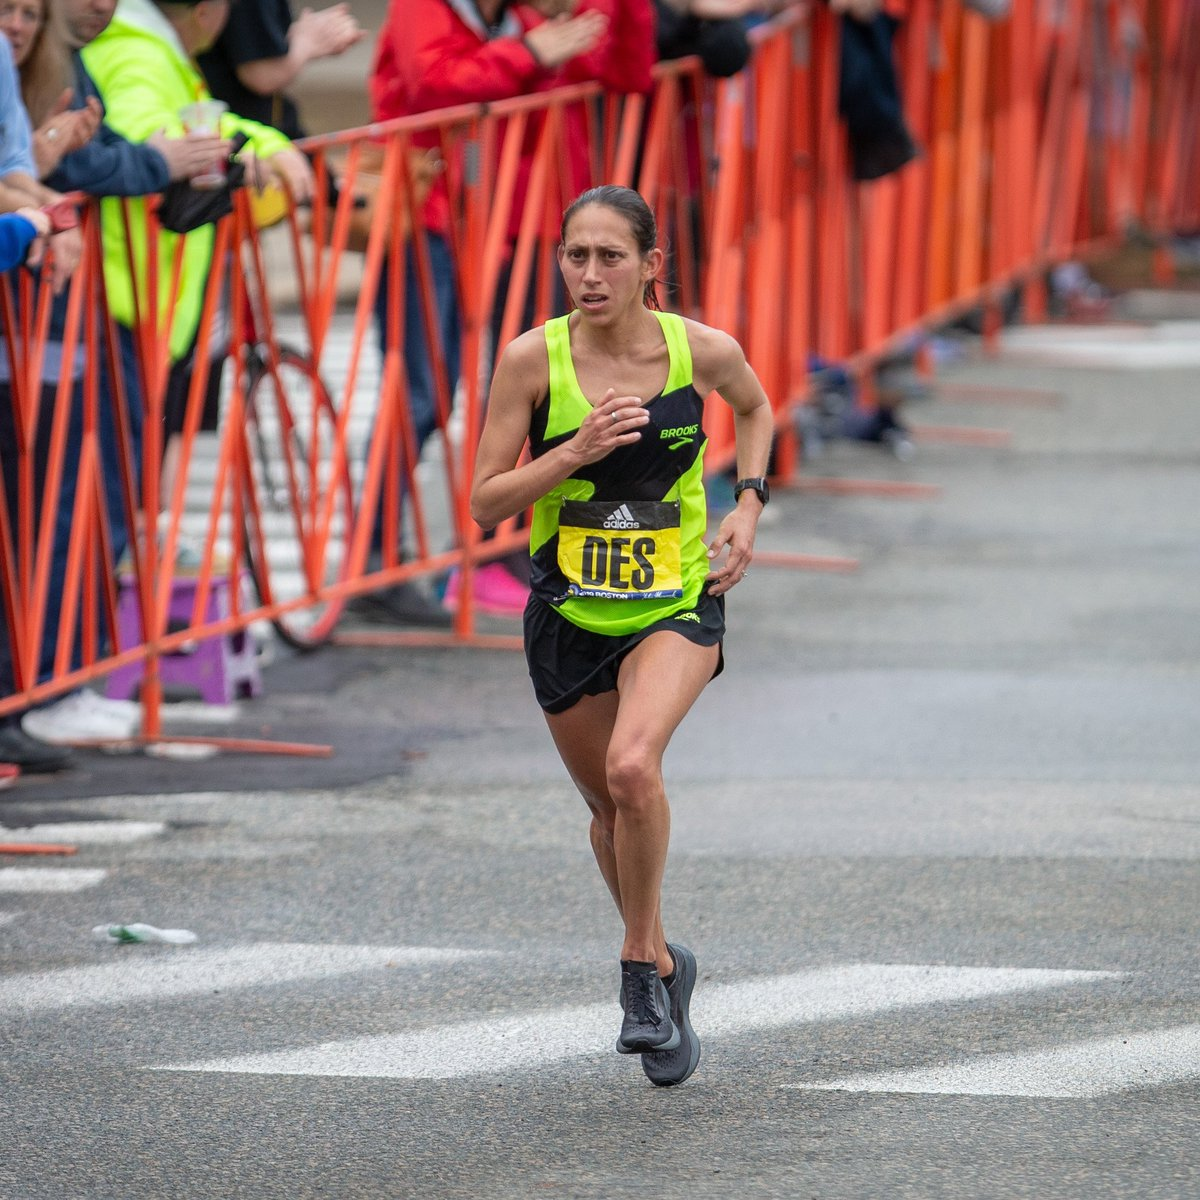 .@des_linden showed up ready to take on #Boston2019 today. Congrats on 5th place, and 2nd American, Des! #RunHappyBOS #KeepShowingUp ( @newtonphoto)<br>http://pic.twitter.com/kG8v1HWrWz